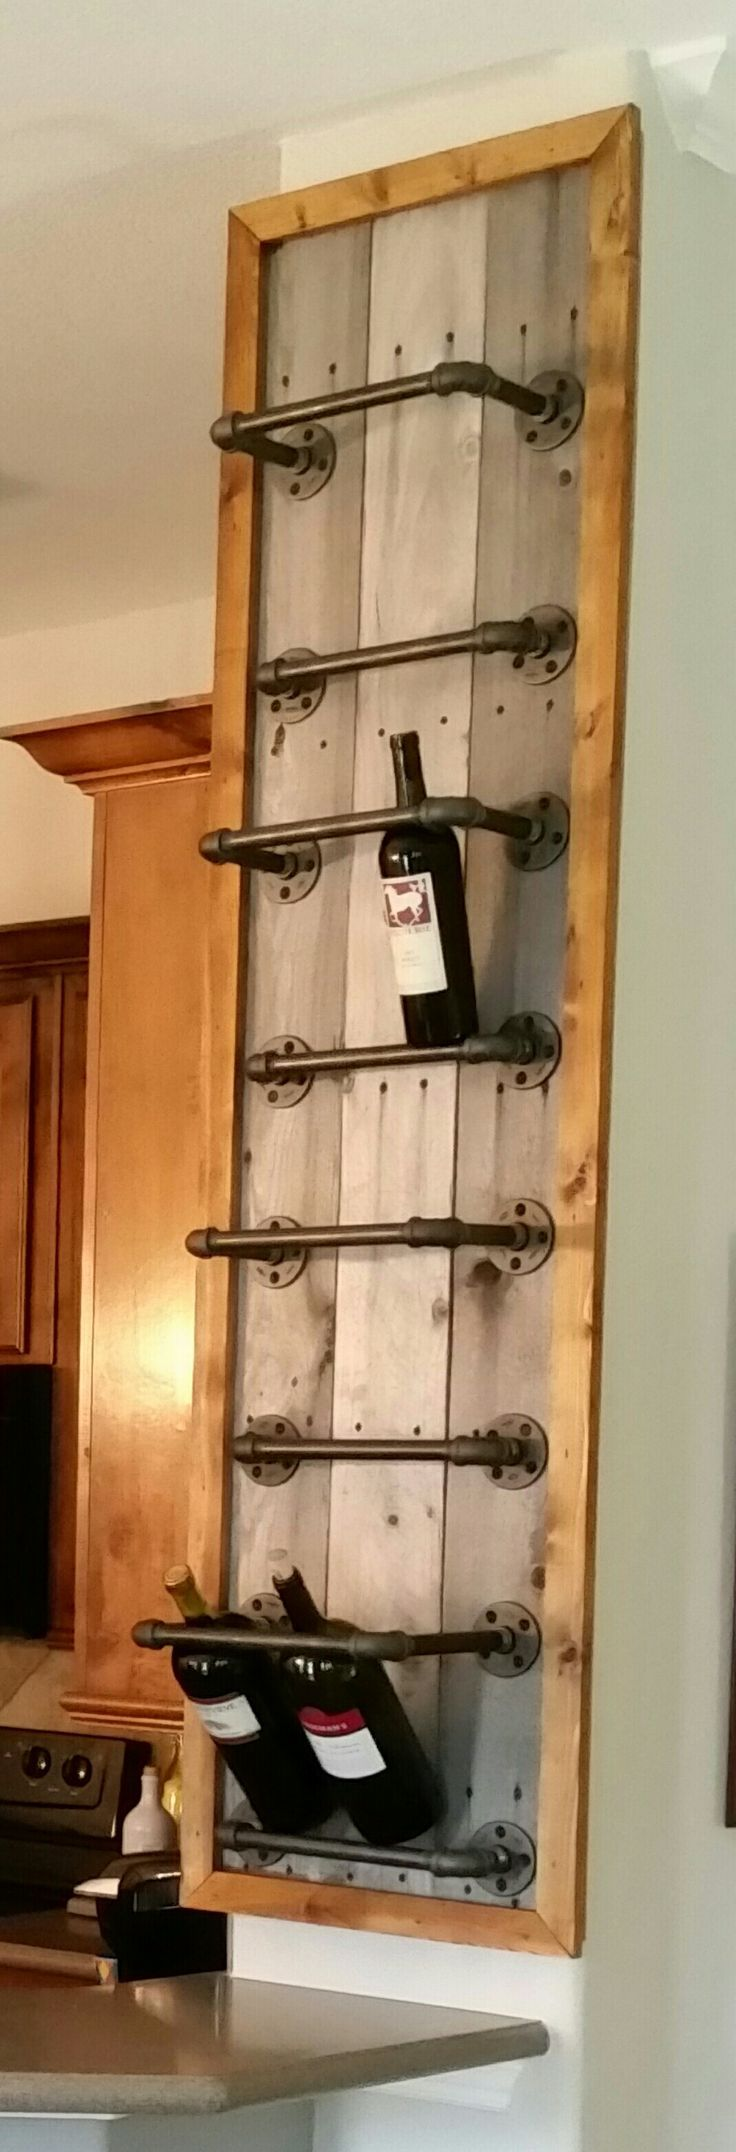 shocking ideas vertical wine rack. 22 Diy Wine Rack Ideas  Offer A Unique Touch To Your Home offer a unique touch to your home